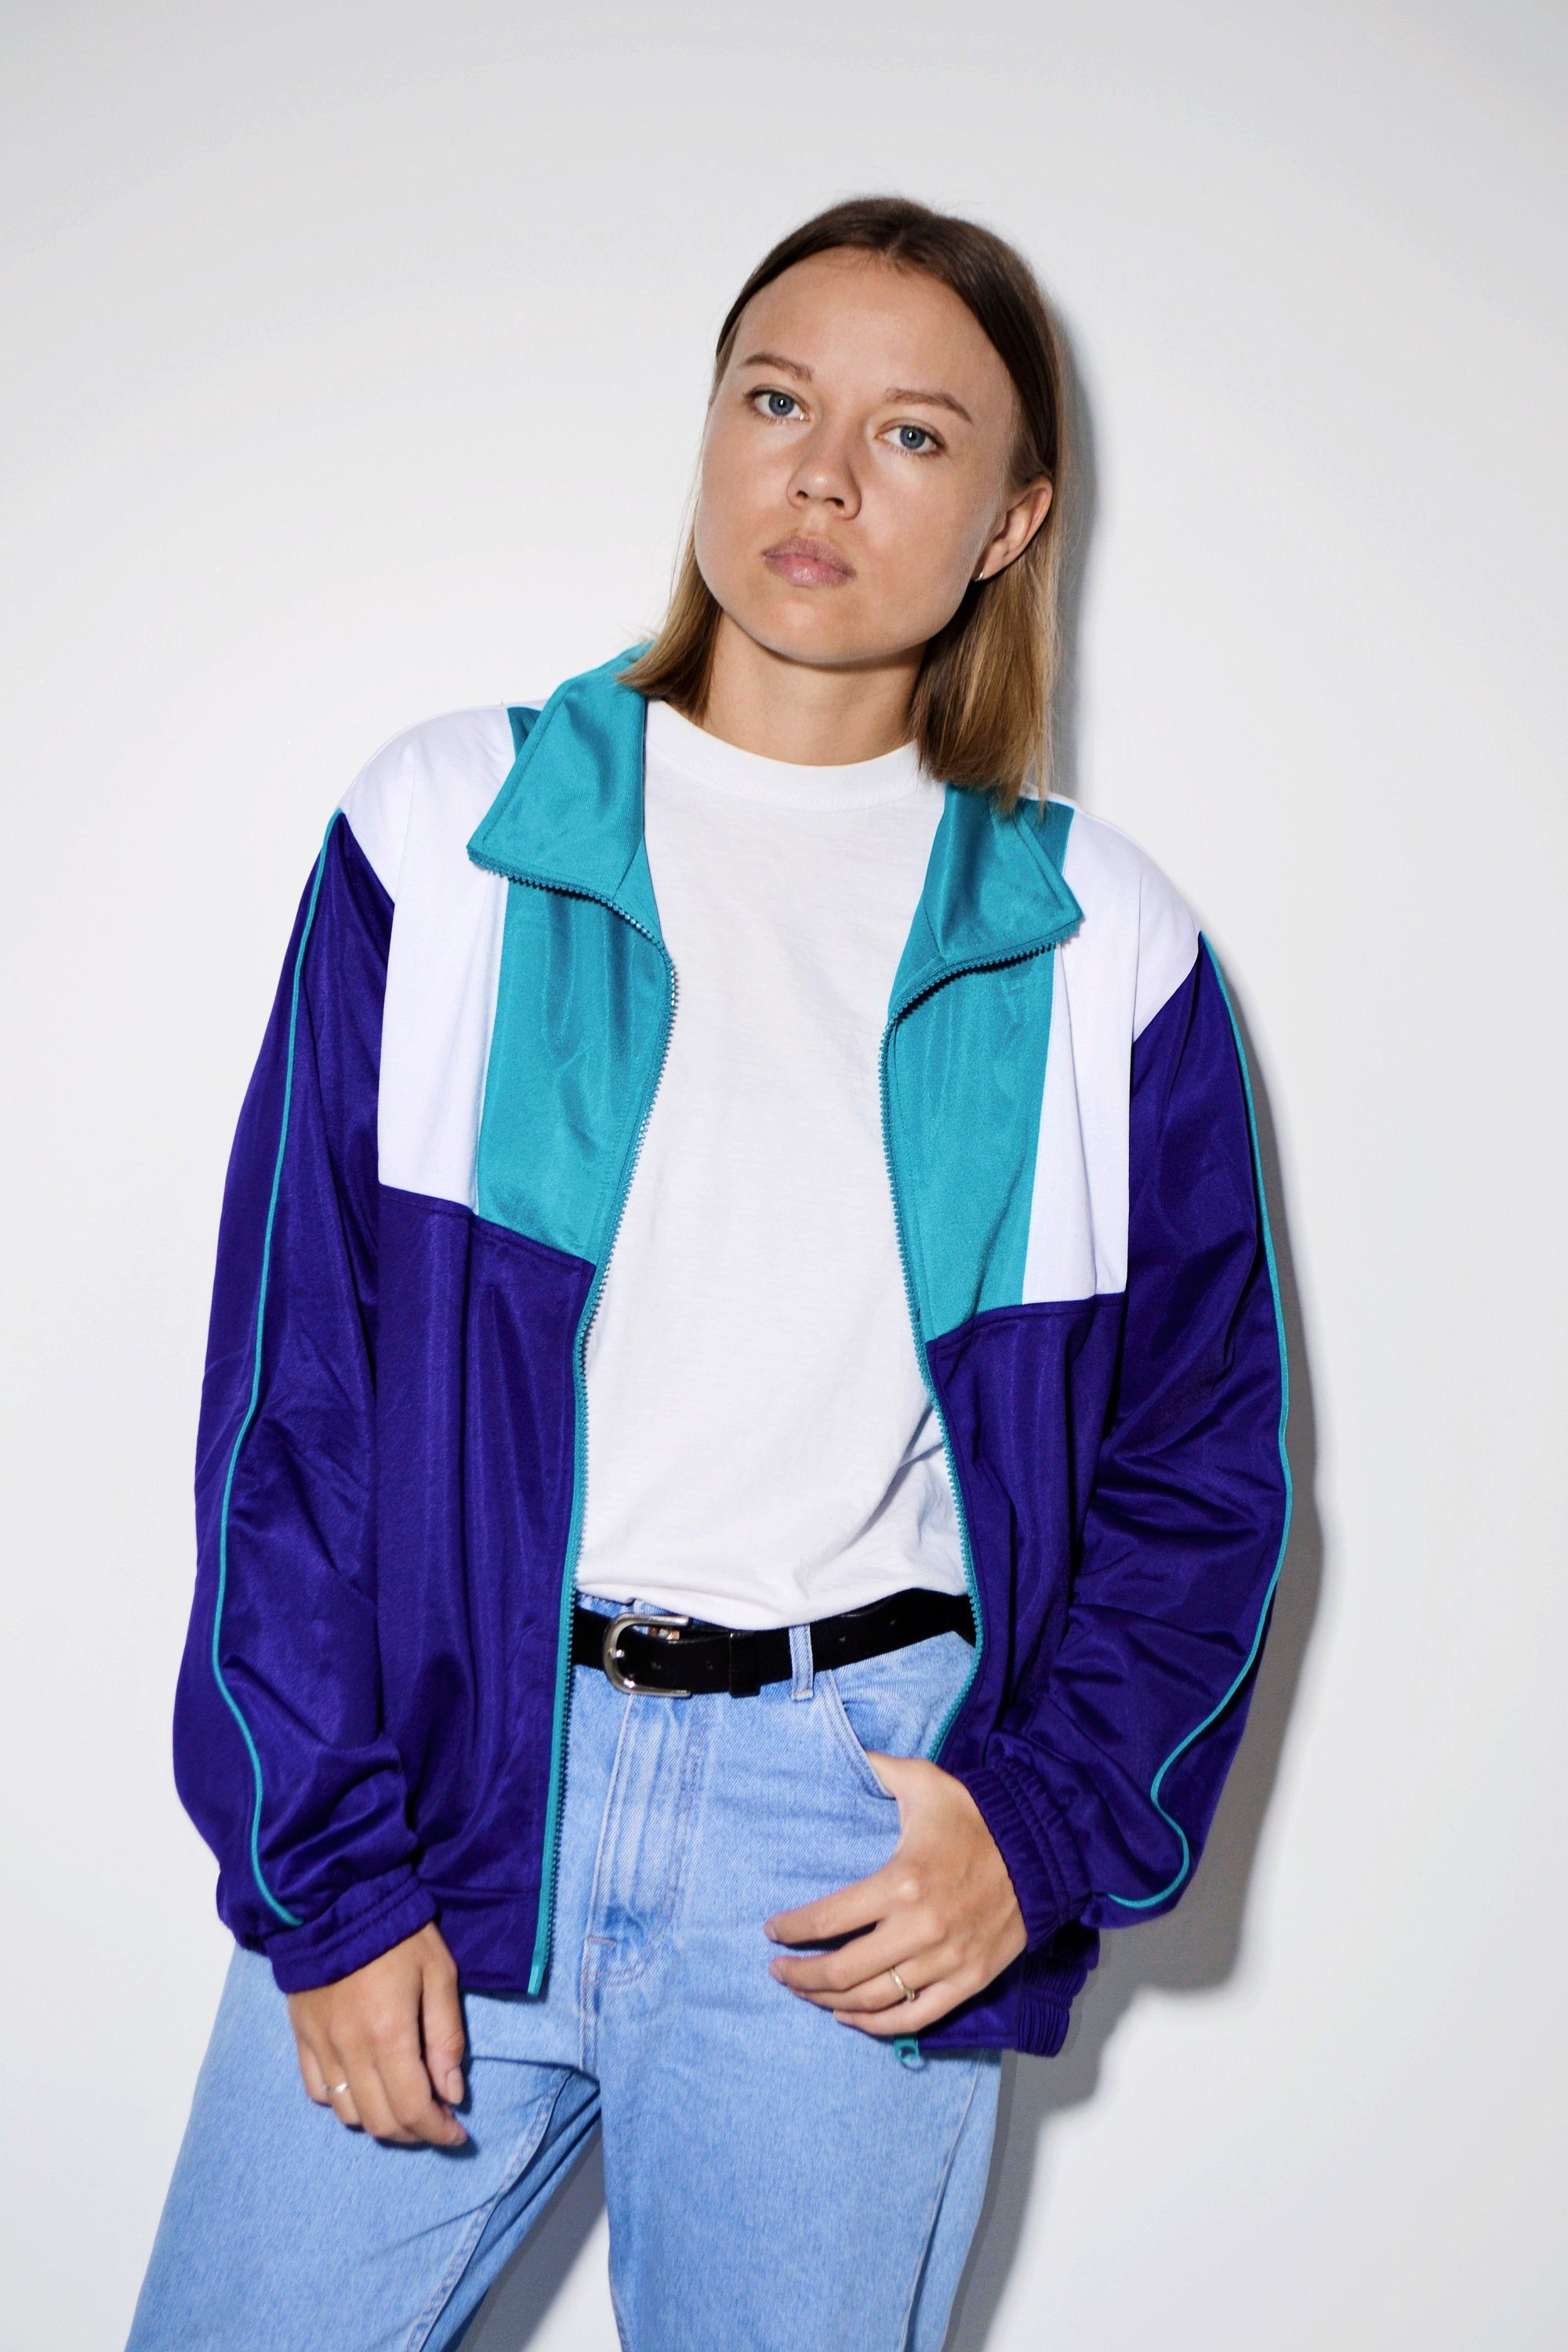 90s Retro Color Blocking Sports Jacket Multi Crazy Tracksuit Top Vintage Track Jacket Unisex Size Medium Mens Large Womens In 2020 Tracksuit Tops Online Shopping Clothes Track Jackets